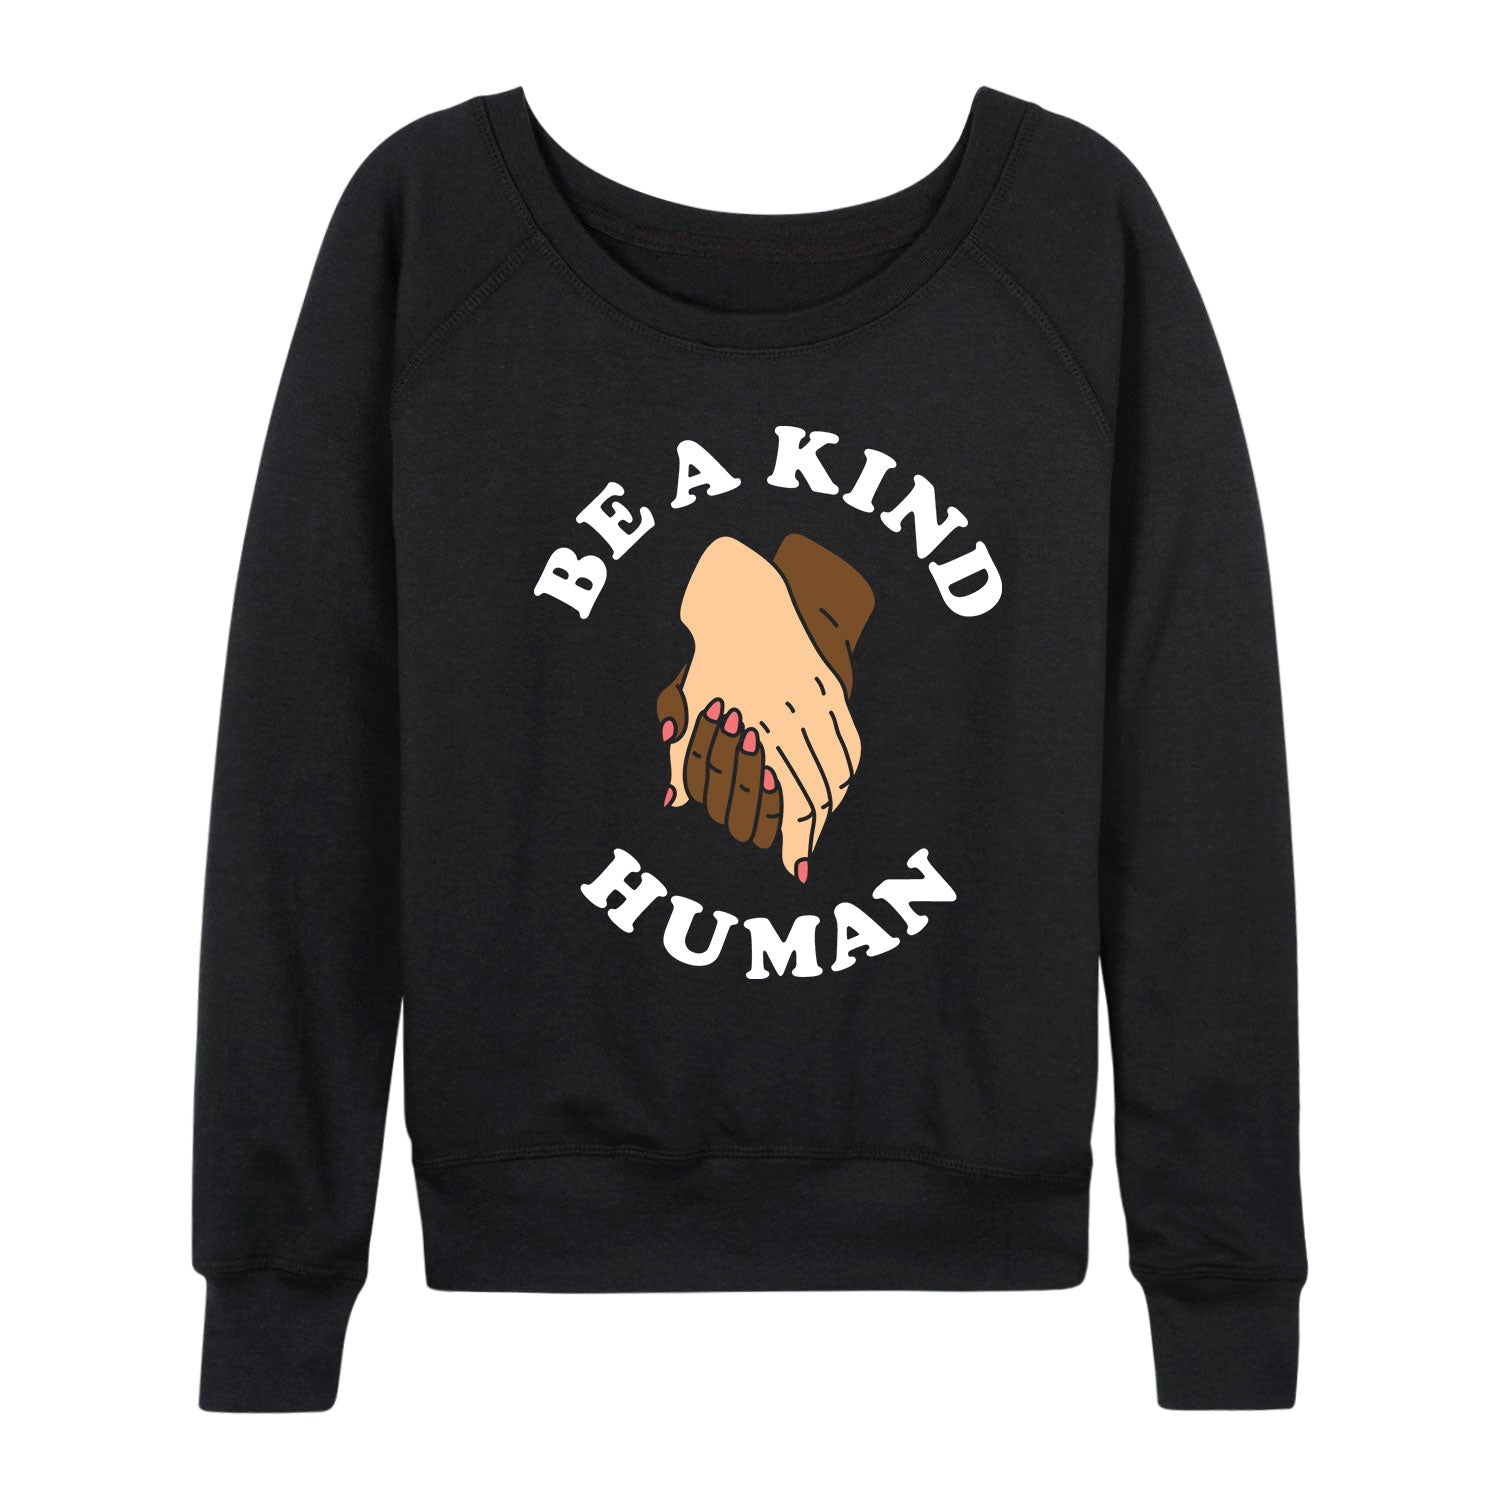 Be A Kind Human - Women's Slouchy